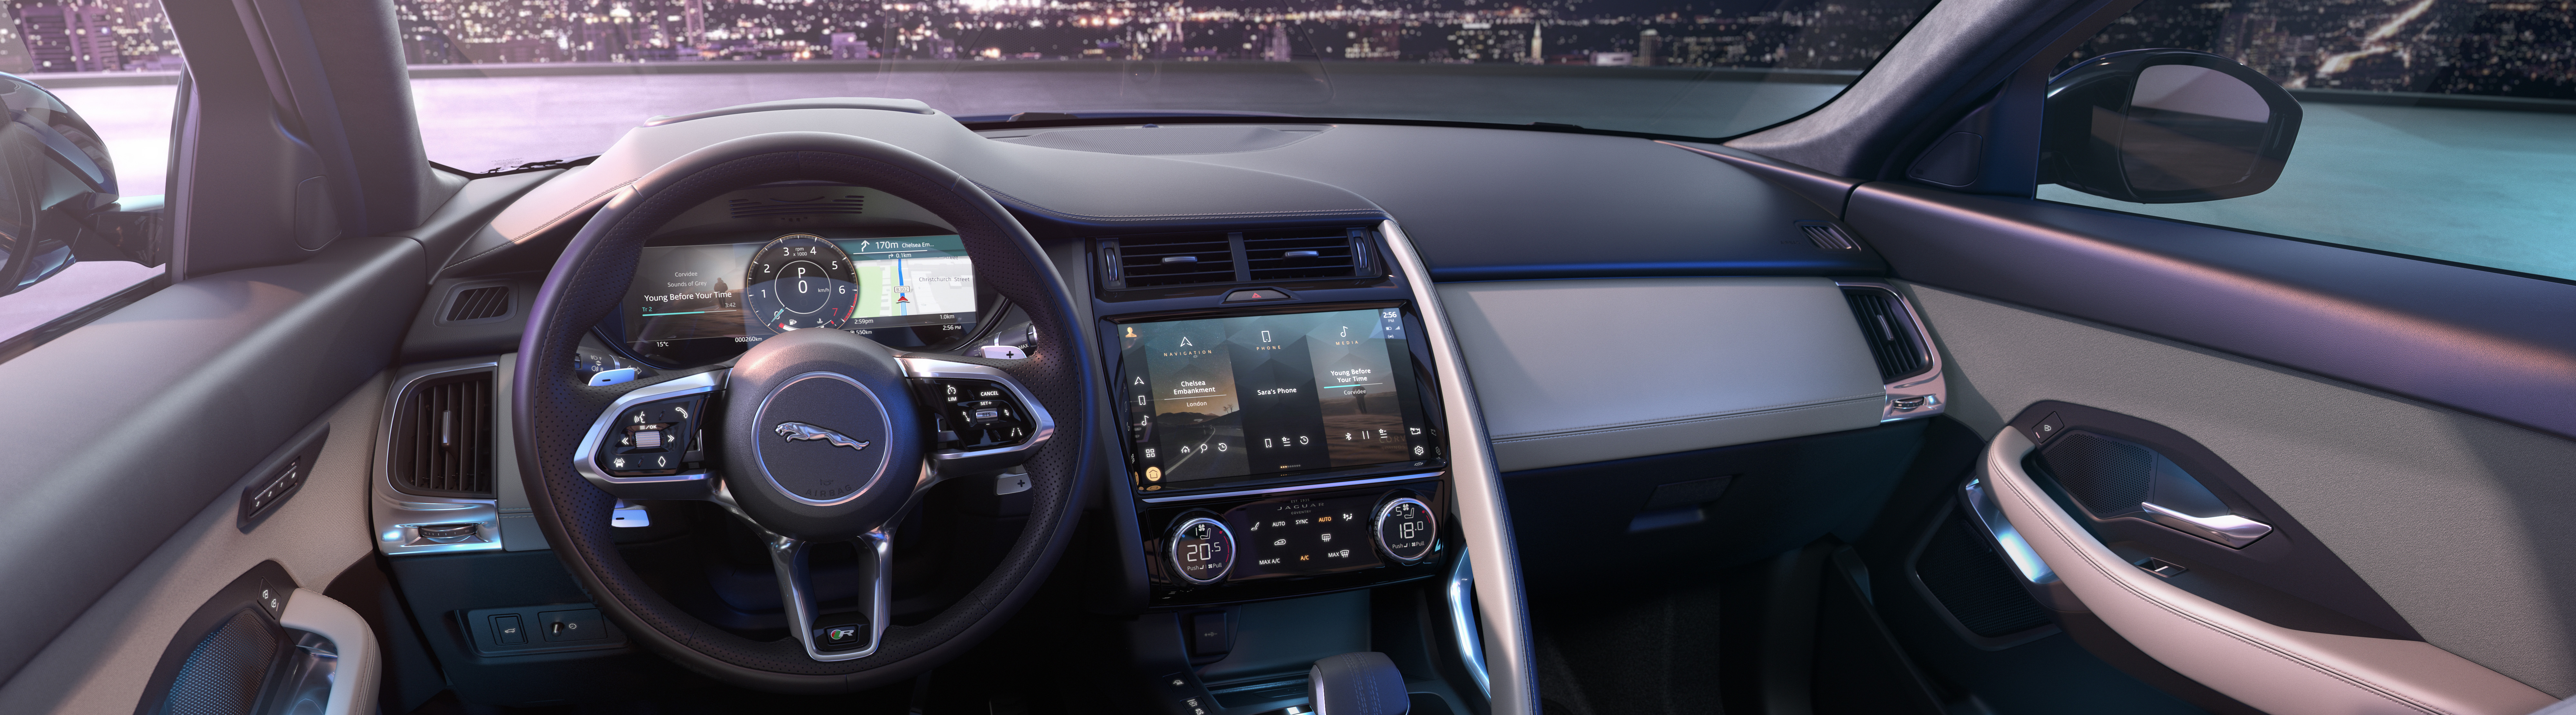 NEW JAGUAR E-PACE INTERIOR IMAGE